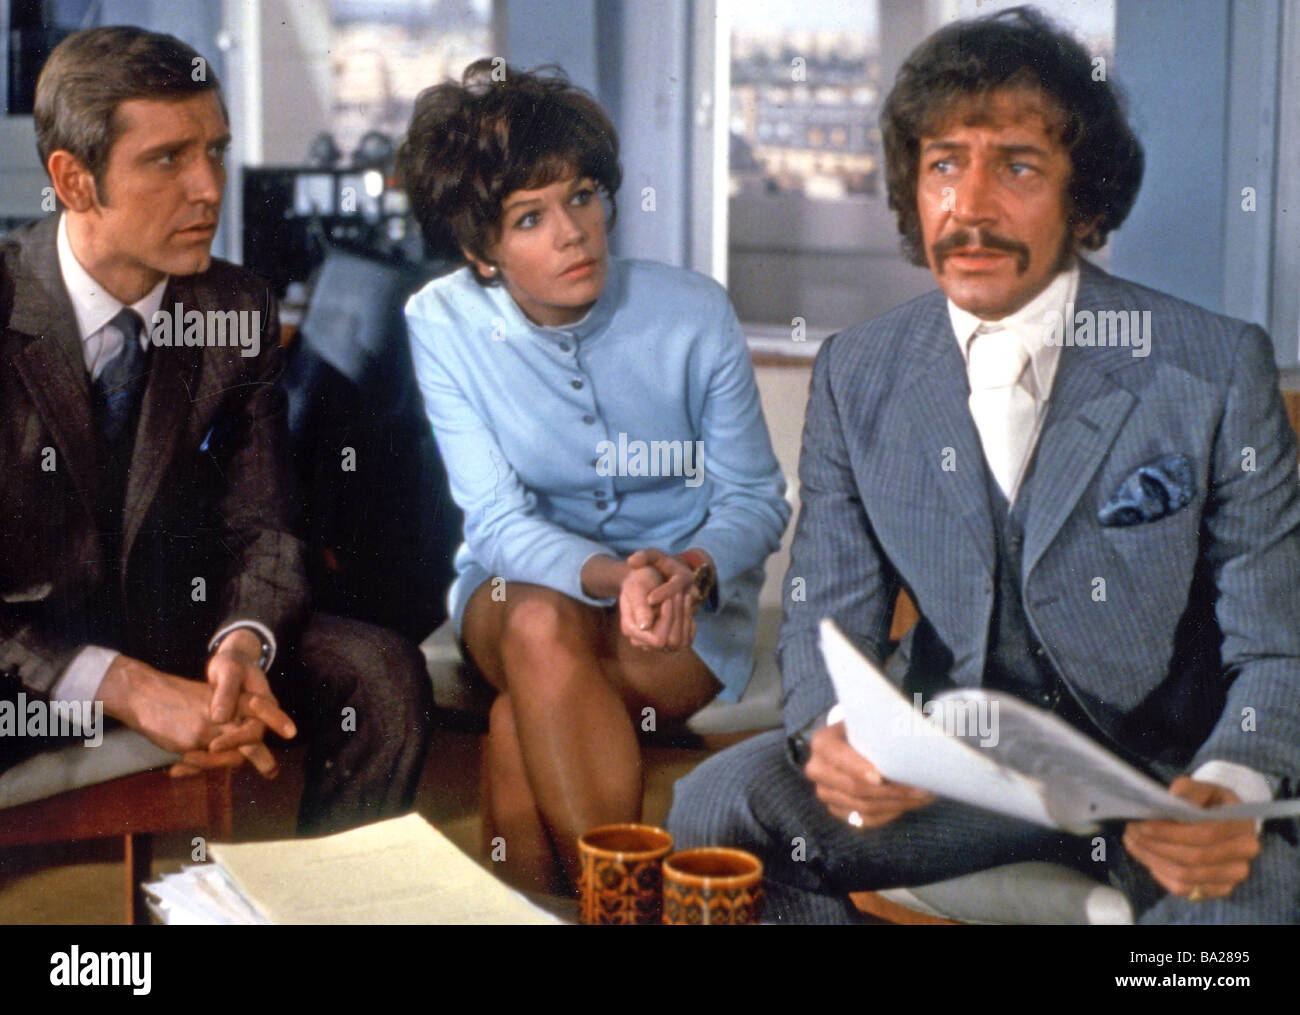 peter wyngarde movies and tv shows